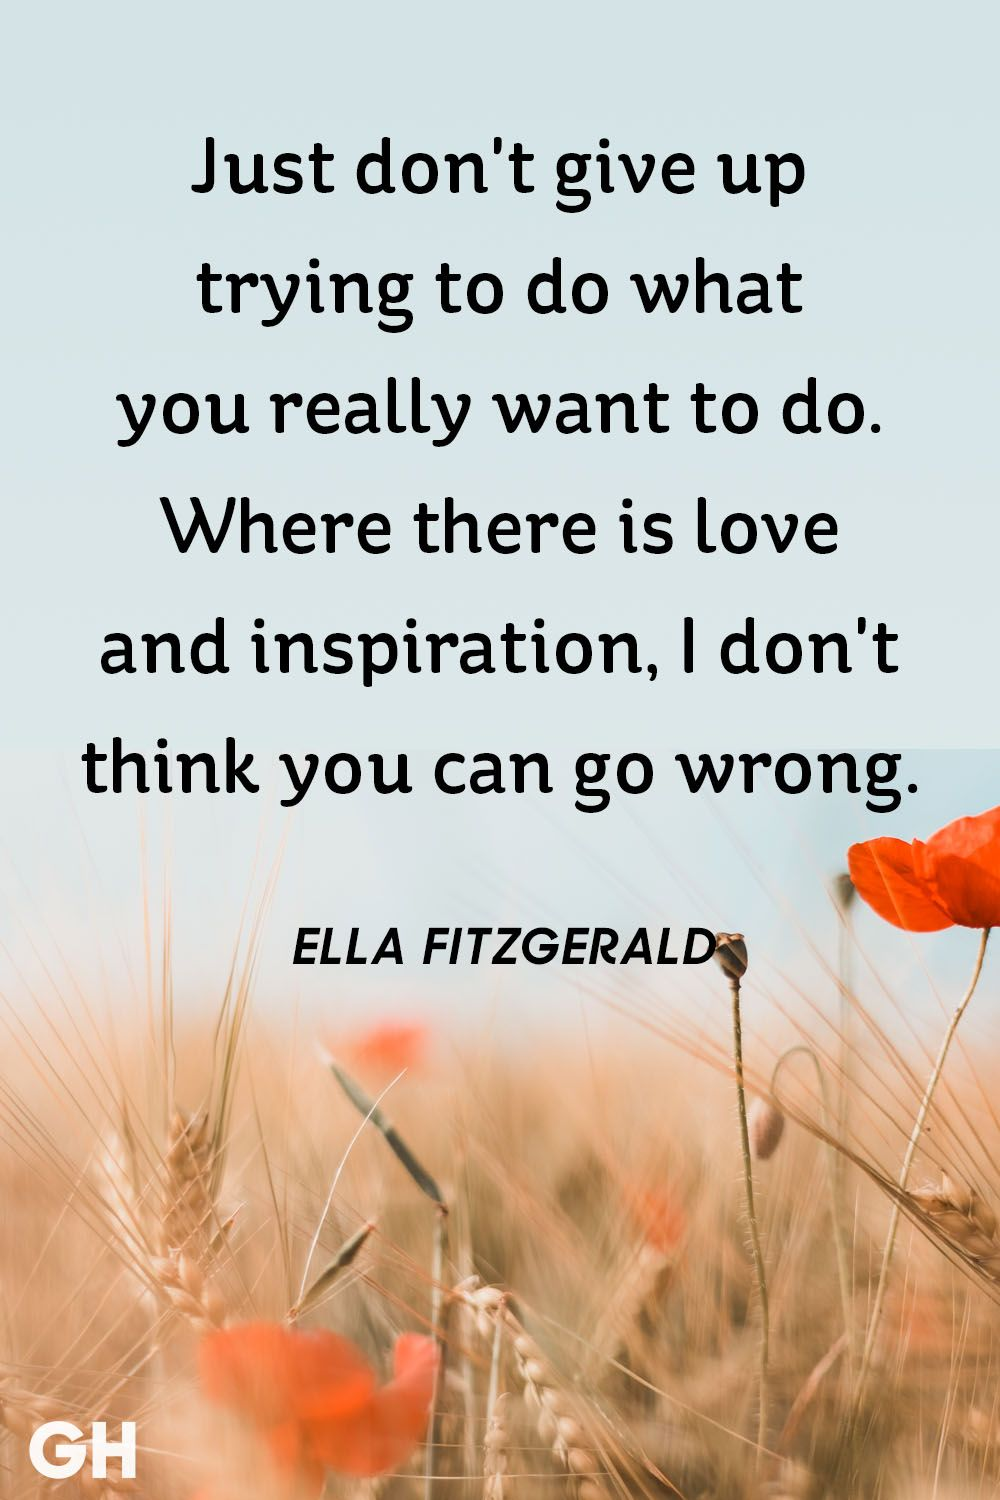 Image of: Uplifting Ella Fitzgerald Inspirational Quote Good Housekeeping 41 Short Inspirational Quotes We Love Best Positive Inspiring Sayings